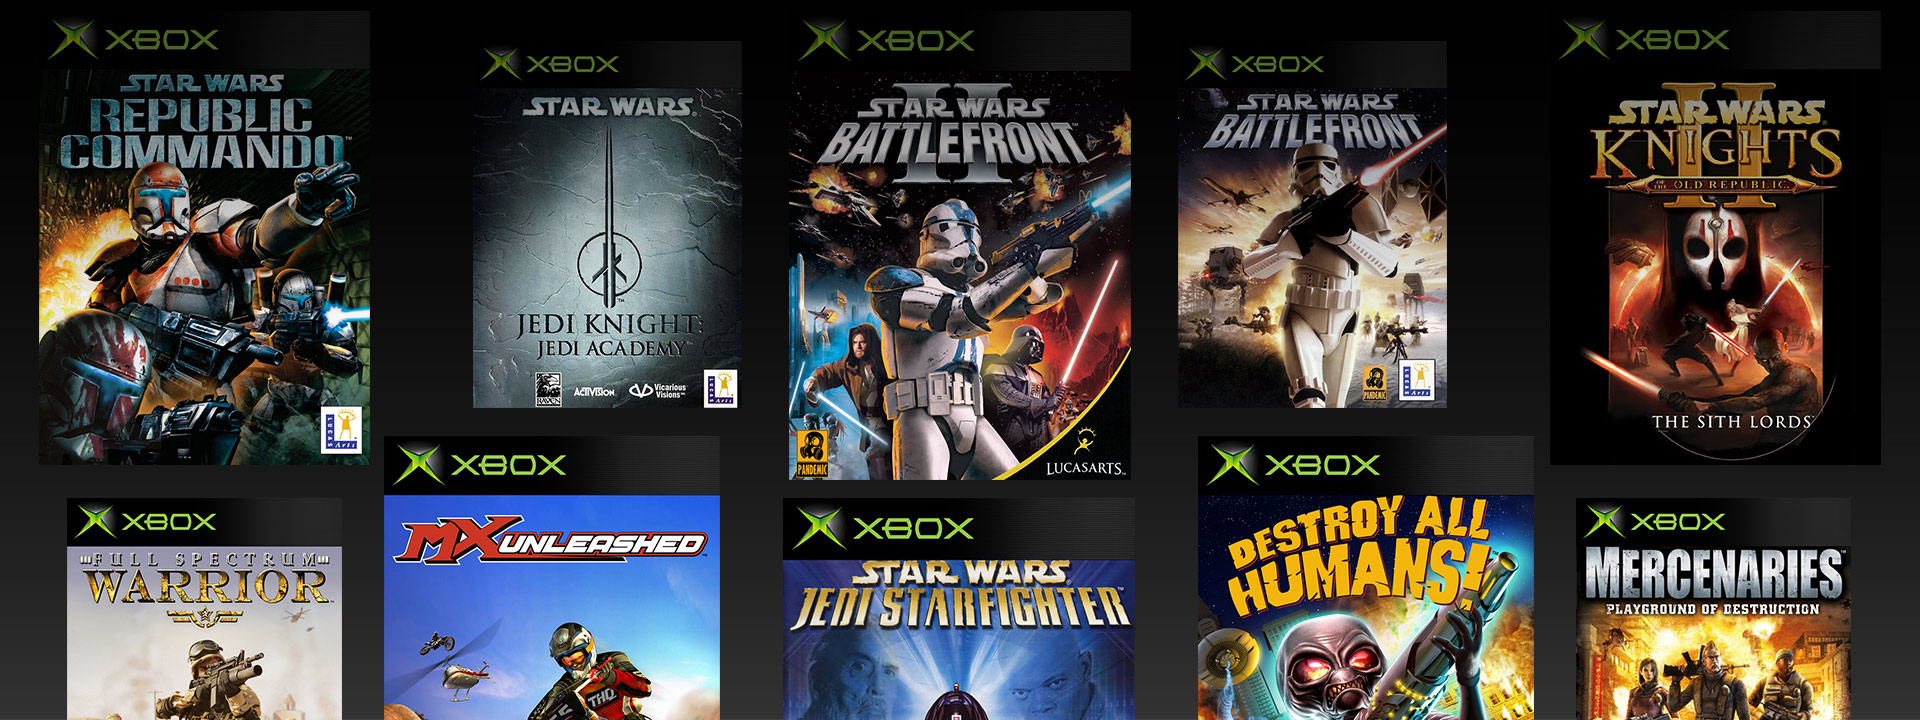 Original Xbox boxshots of Star Wars games